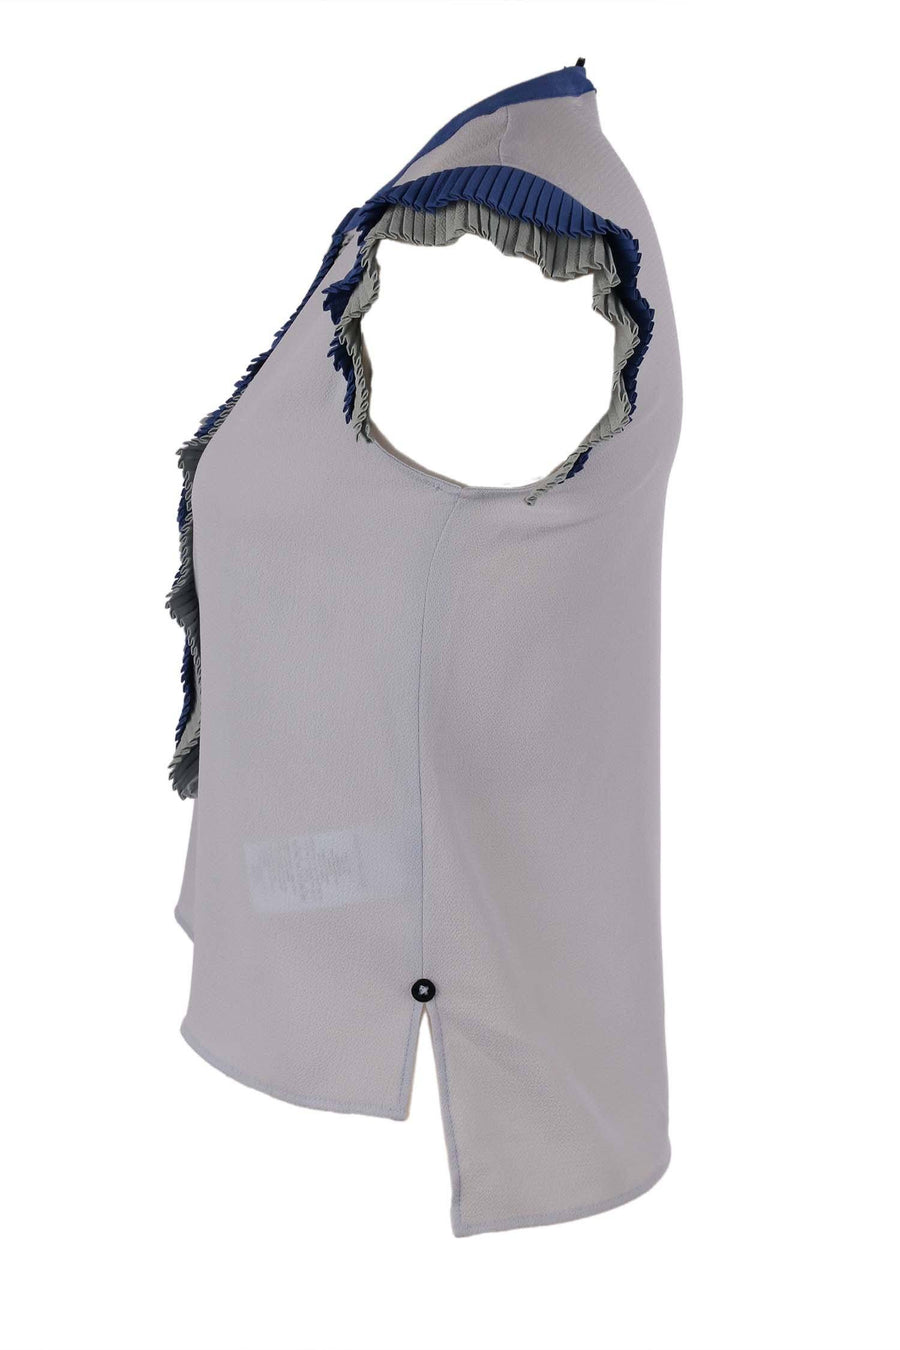 Shop Online Faro Top Vest by Penny Black  Frockaholics Tops